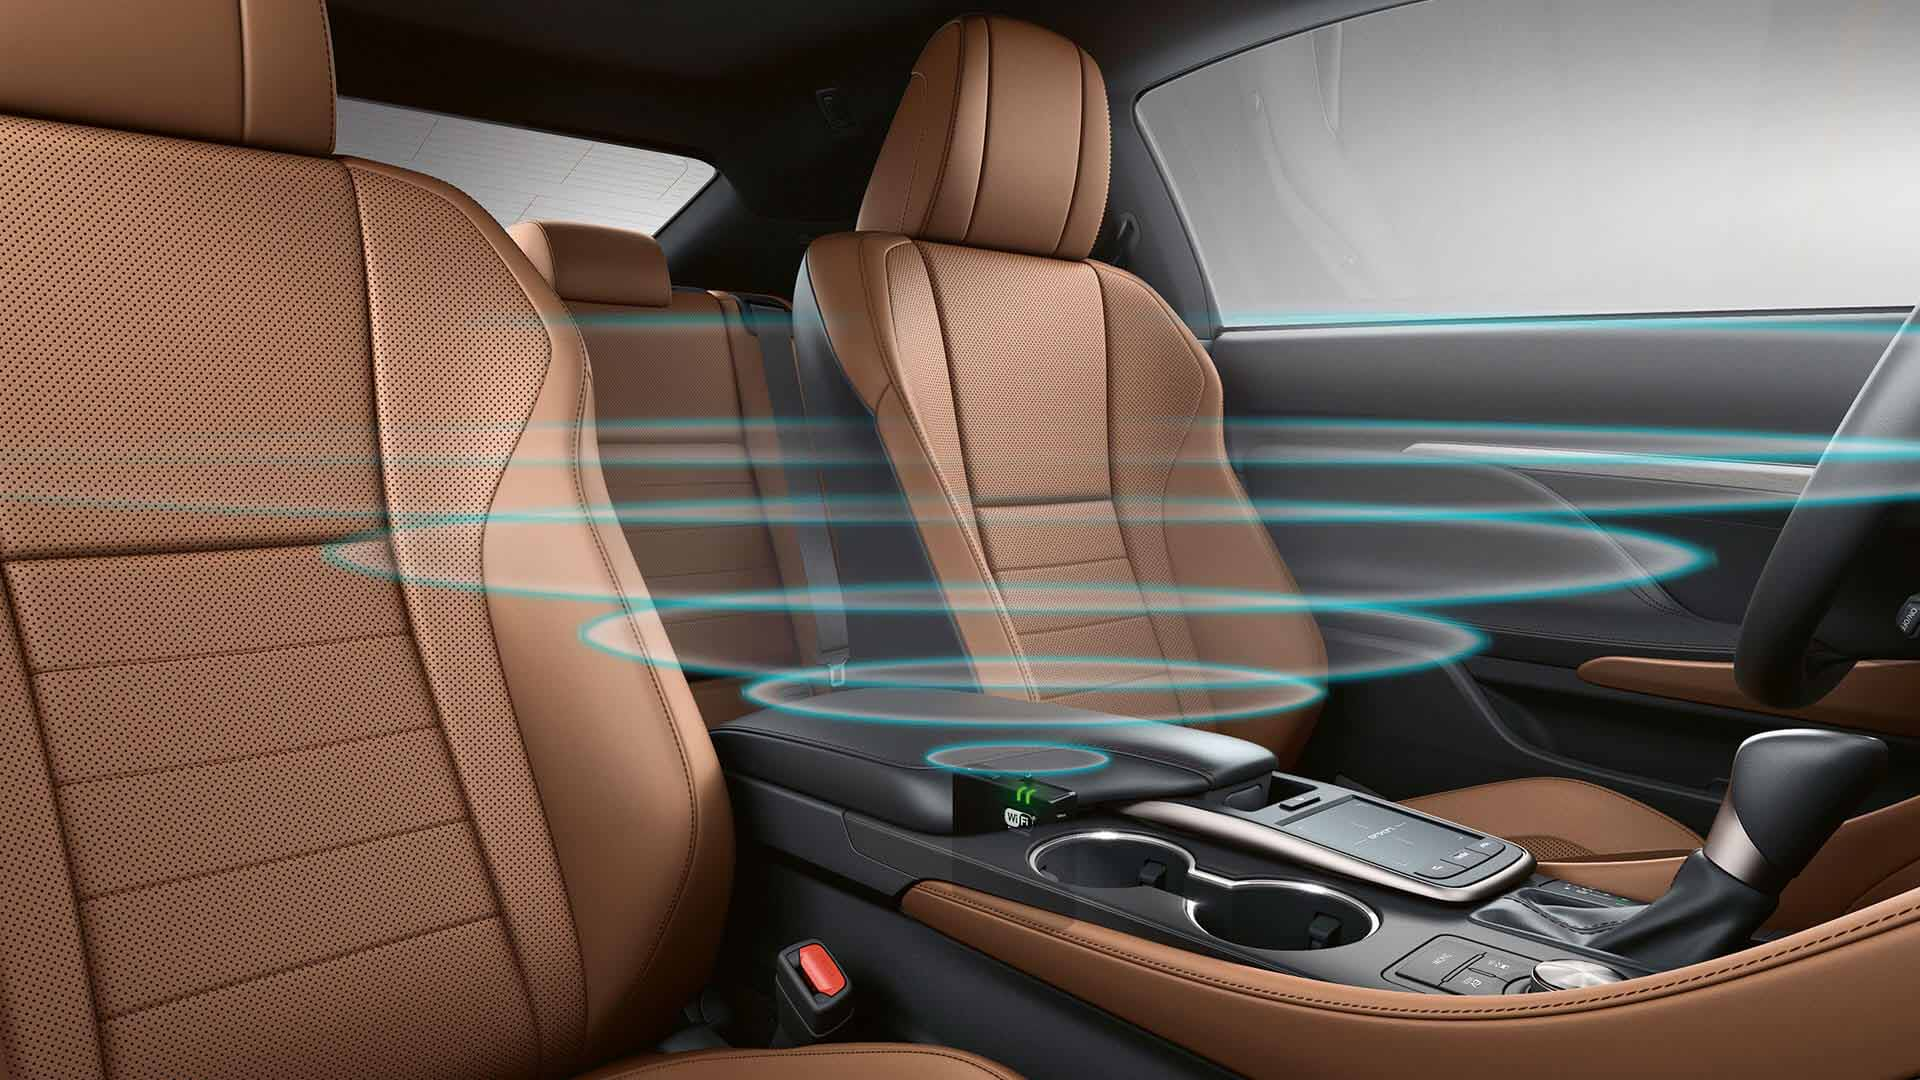 2018 lexus rc hotspot digital connectivity 1920x1080 v2